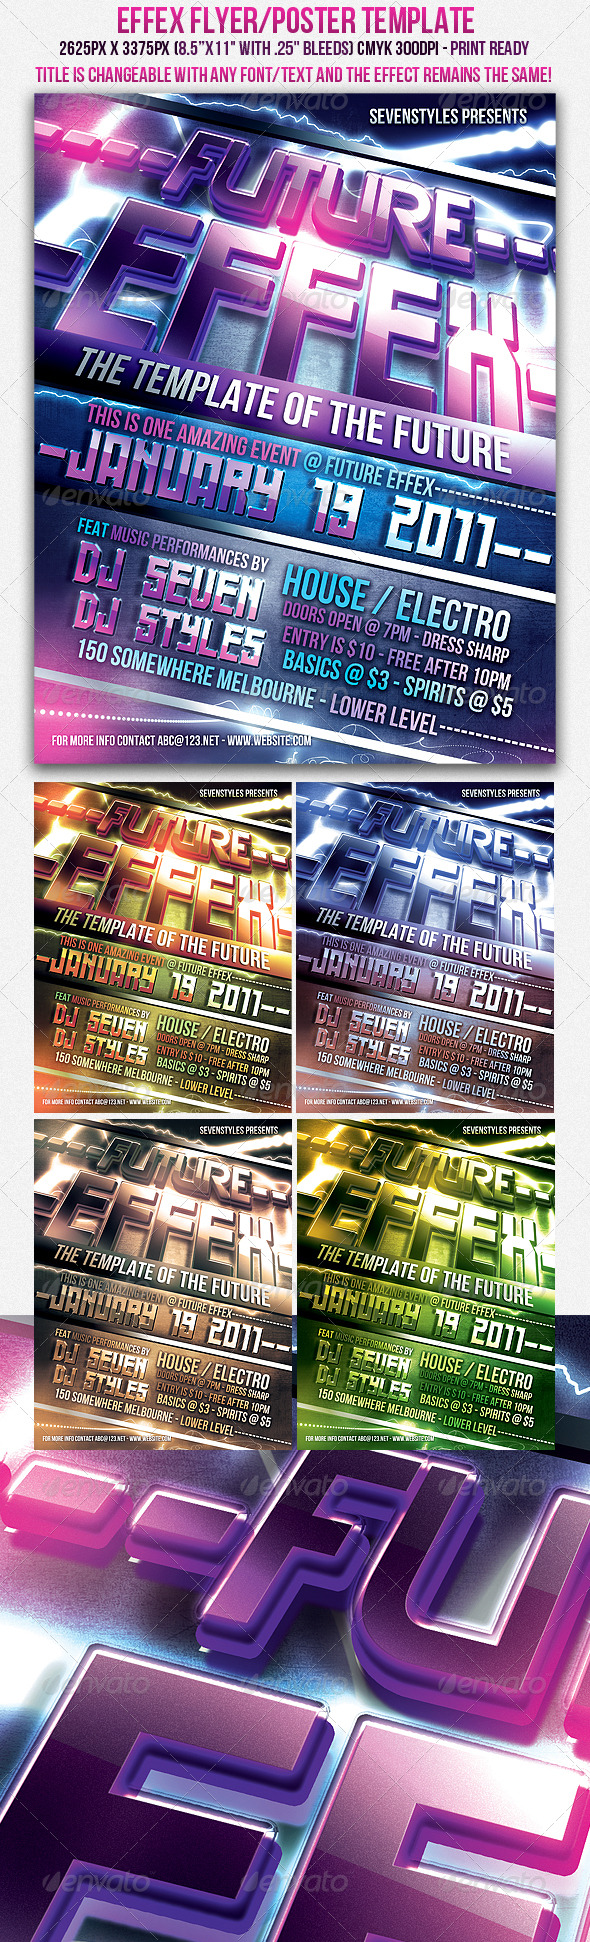 GraphicRiver Effex Poster Flyer Template 149712